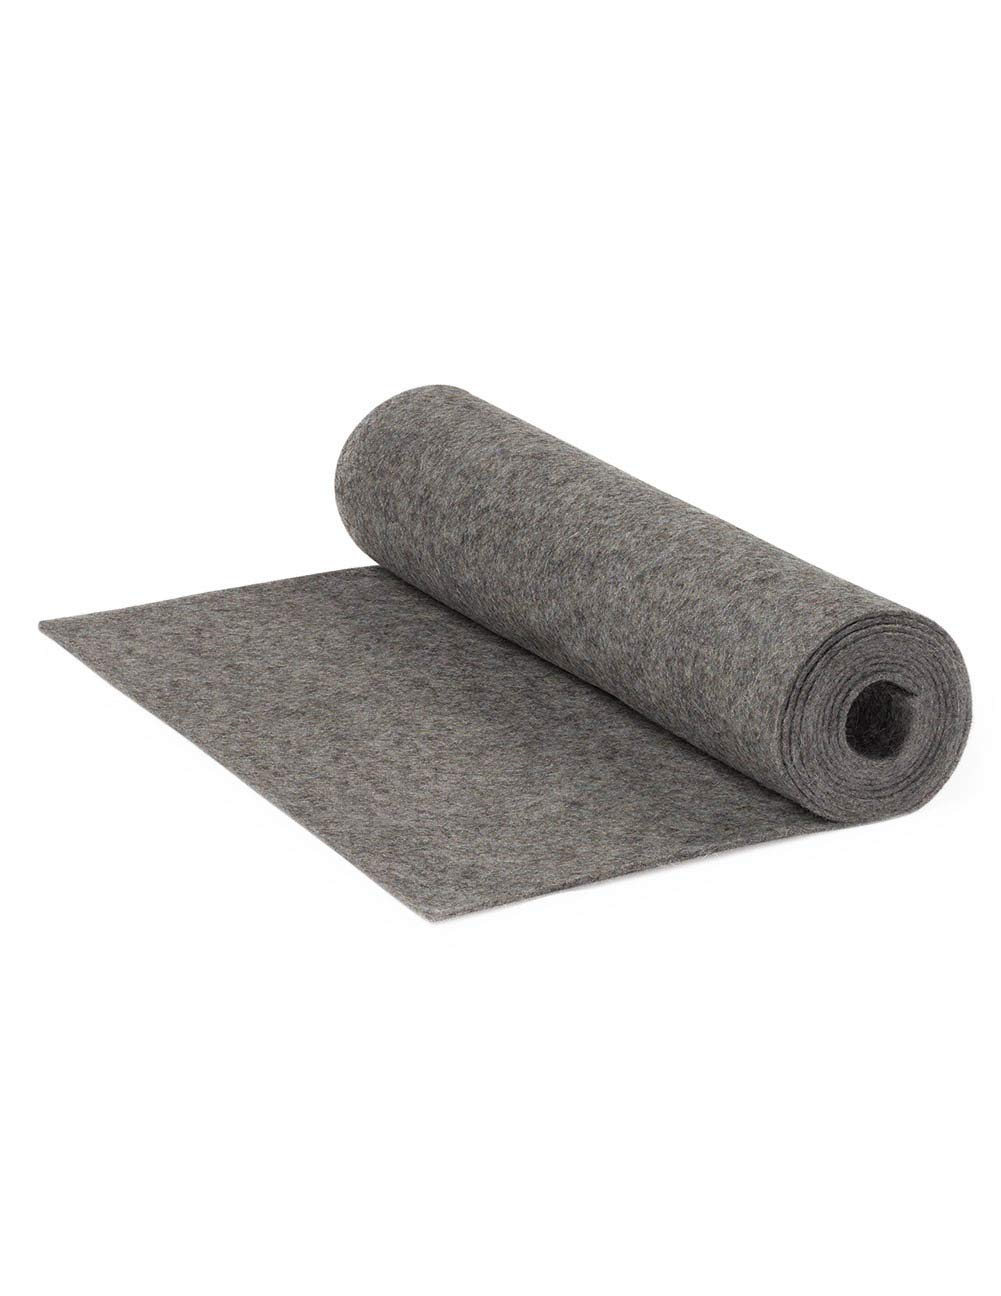 F51 Felt 3' Long X 1/16' Thick X 60' Wide The Felt Store F-51